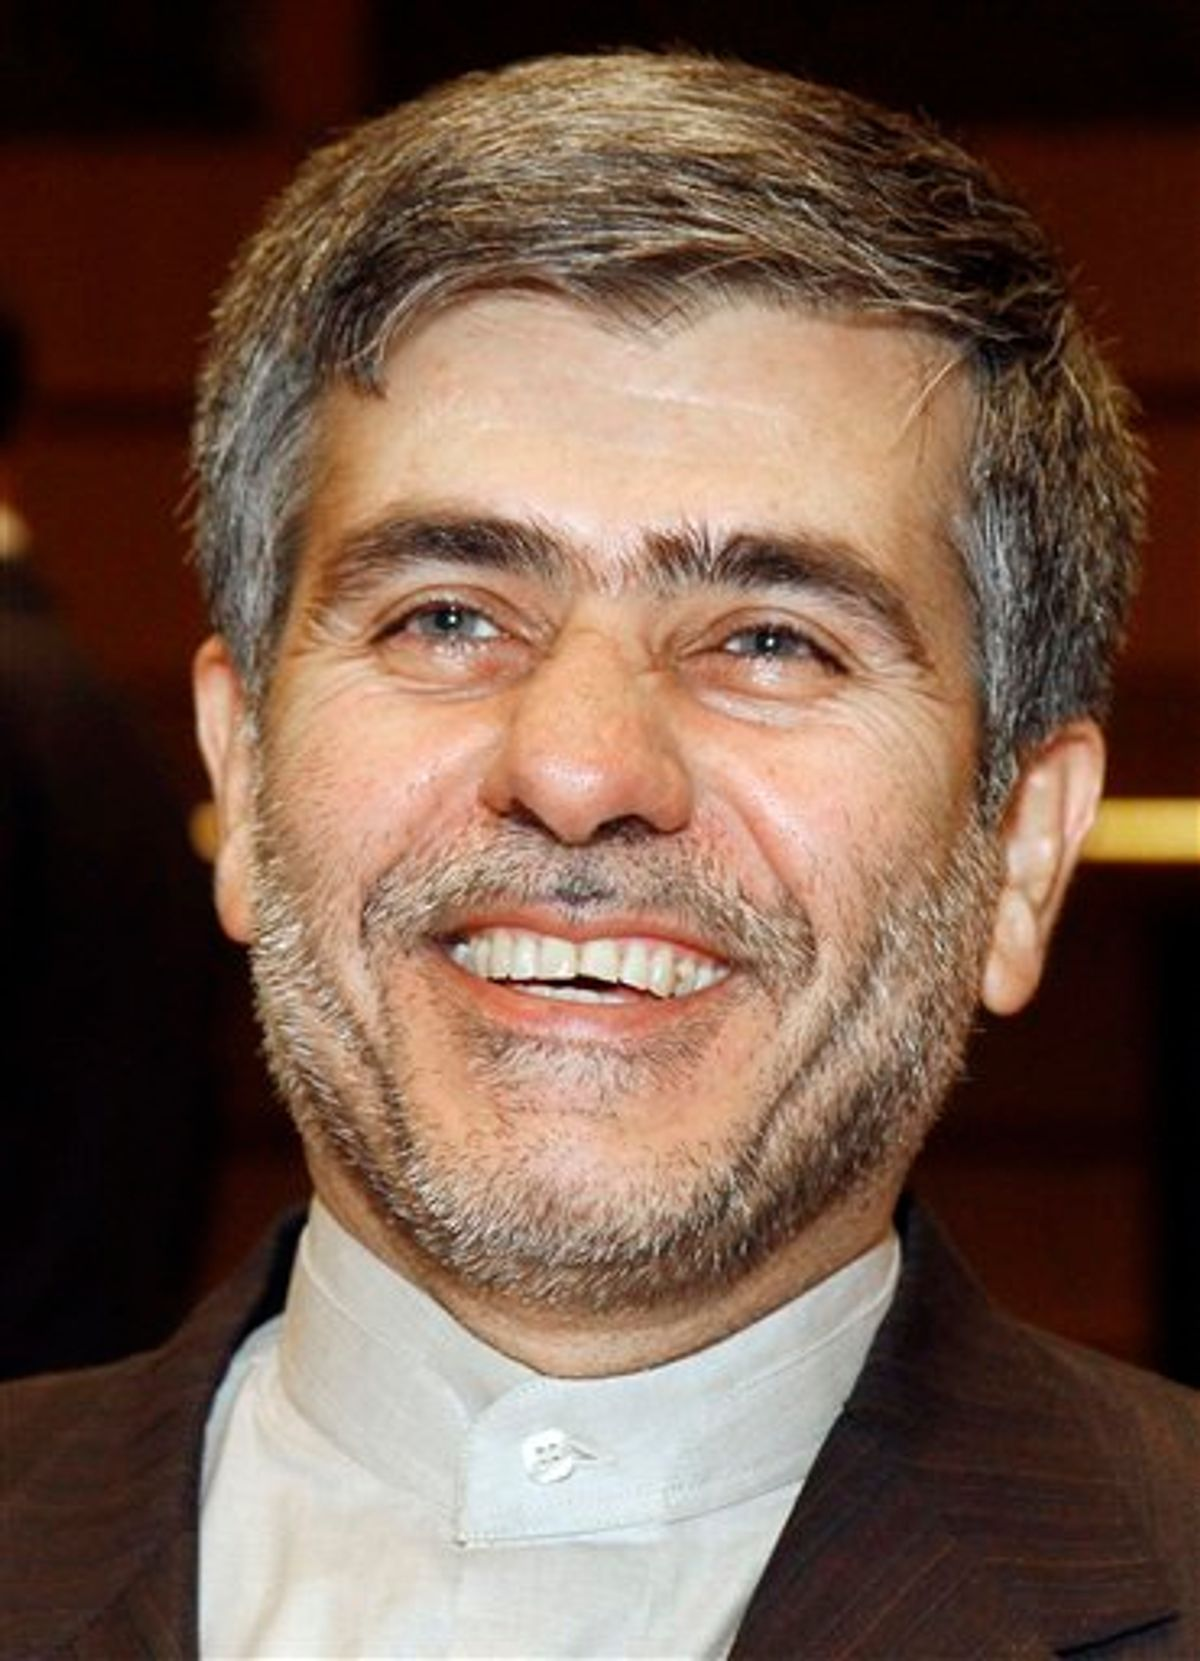 Fereidoun Abbasi Davani, Iran's Vice President and Head of Atomic Energy Organization, smiles during at the Ministerial Conference on Nuclear Safety at the International Atomic Energy Agency, IAEA, in Vienna, Austria, on Monday, June 20, 2011. (AP Photo/Ronald Zak)  (AP)